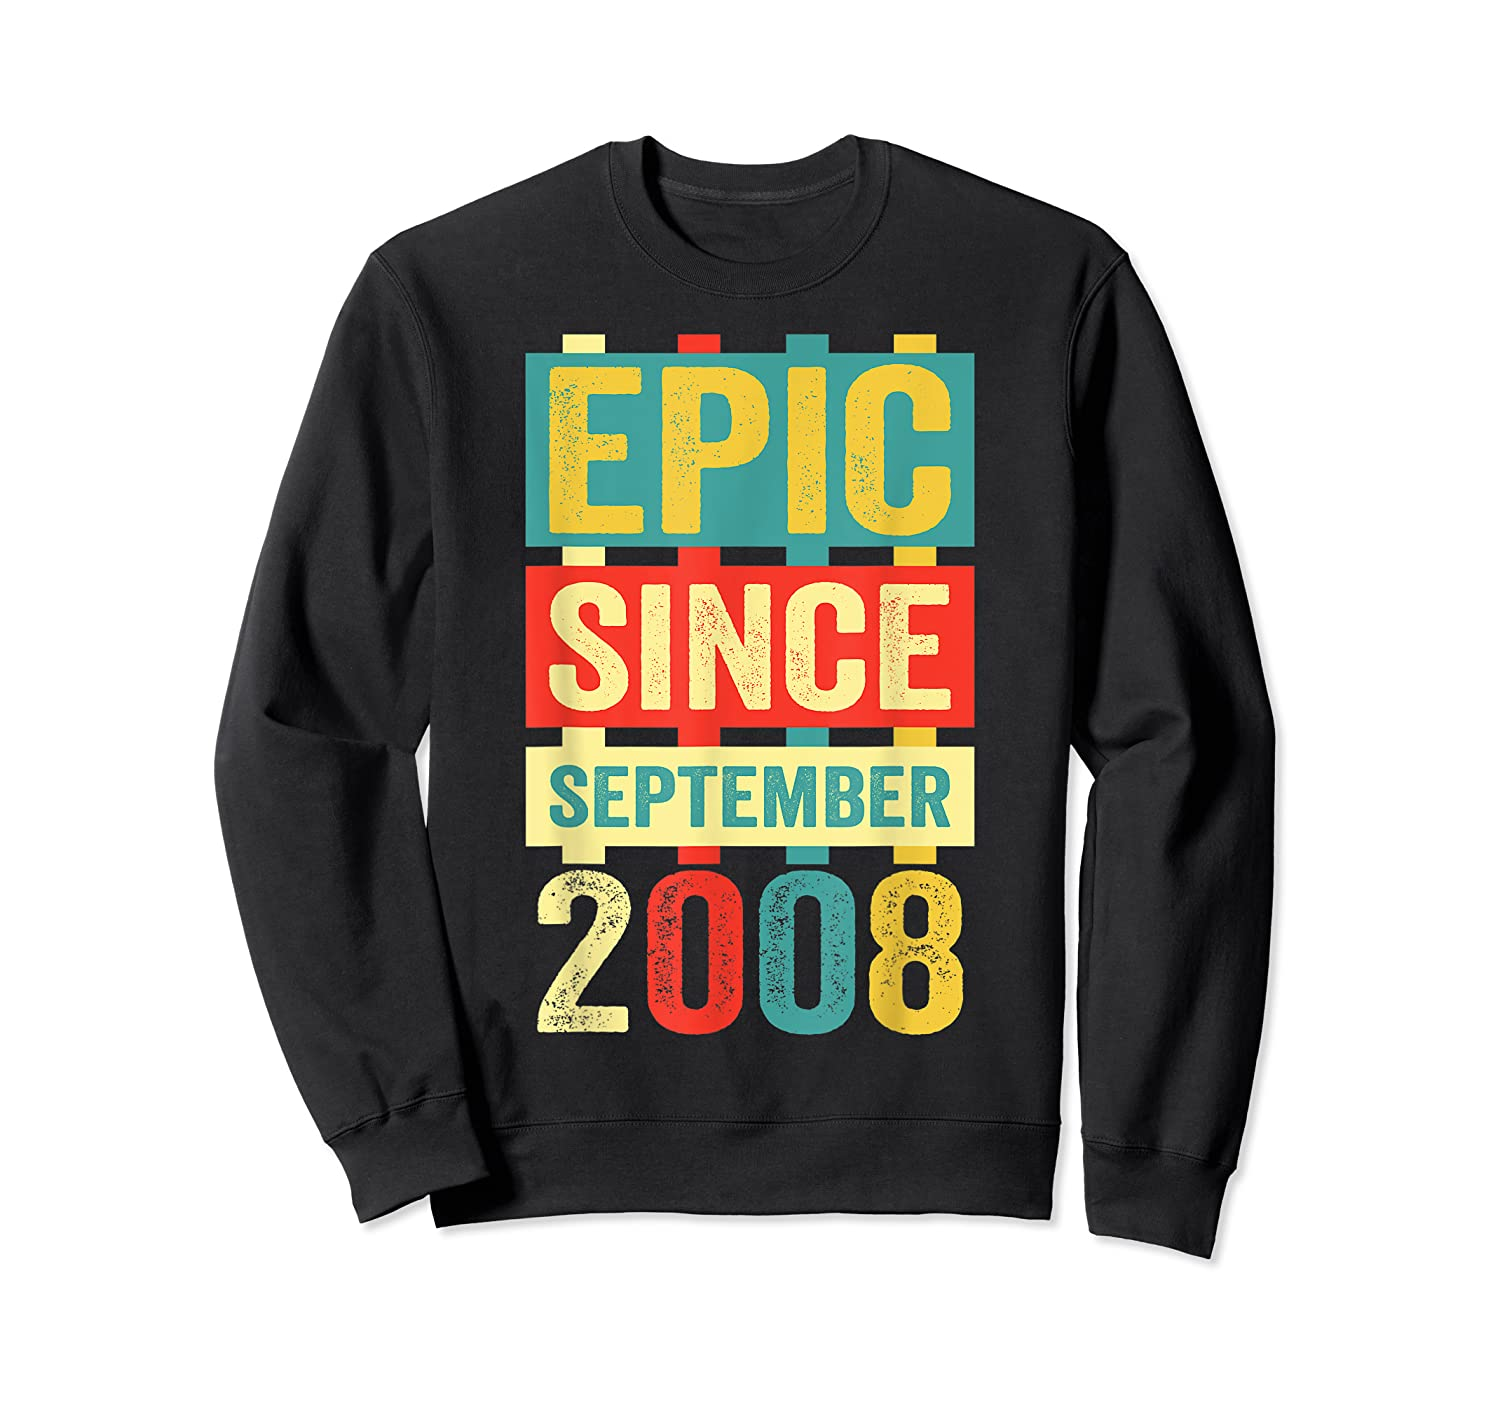 Epic Since September 2008 T-shirt- 11 Years Old Shirt Gift Crewneck Sweater